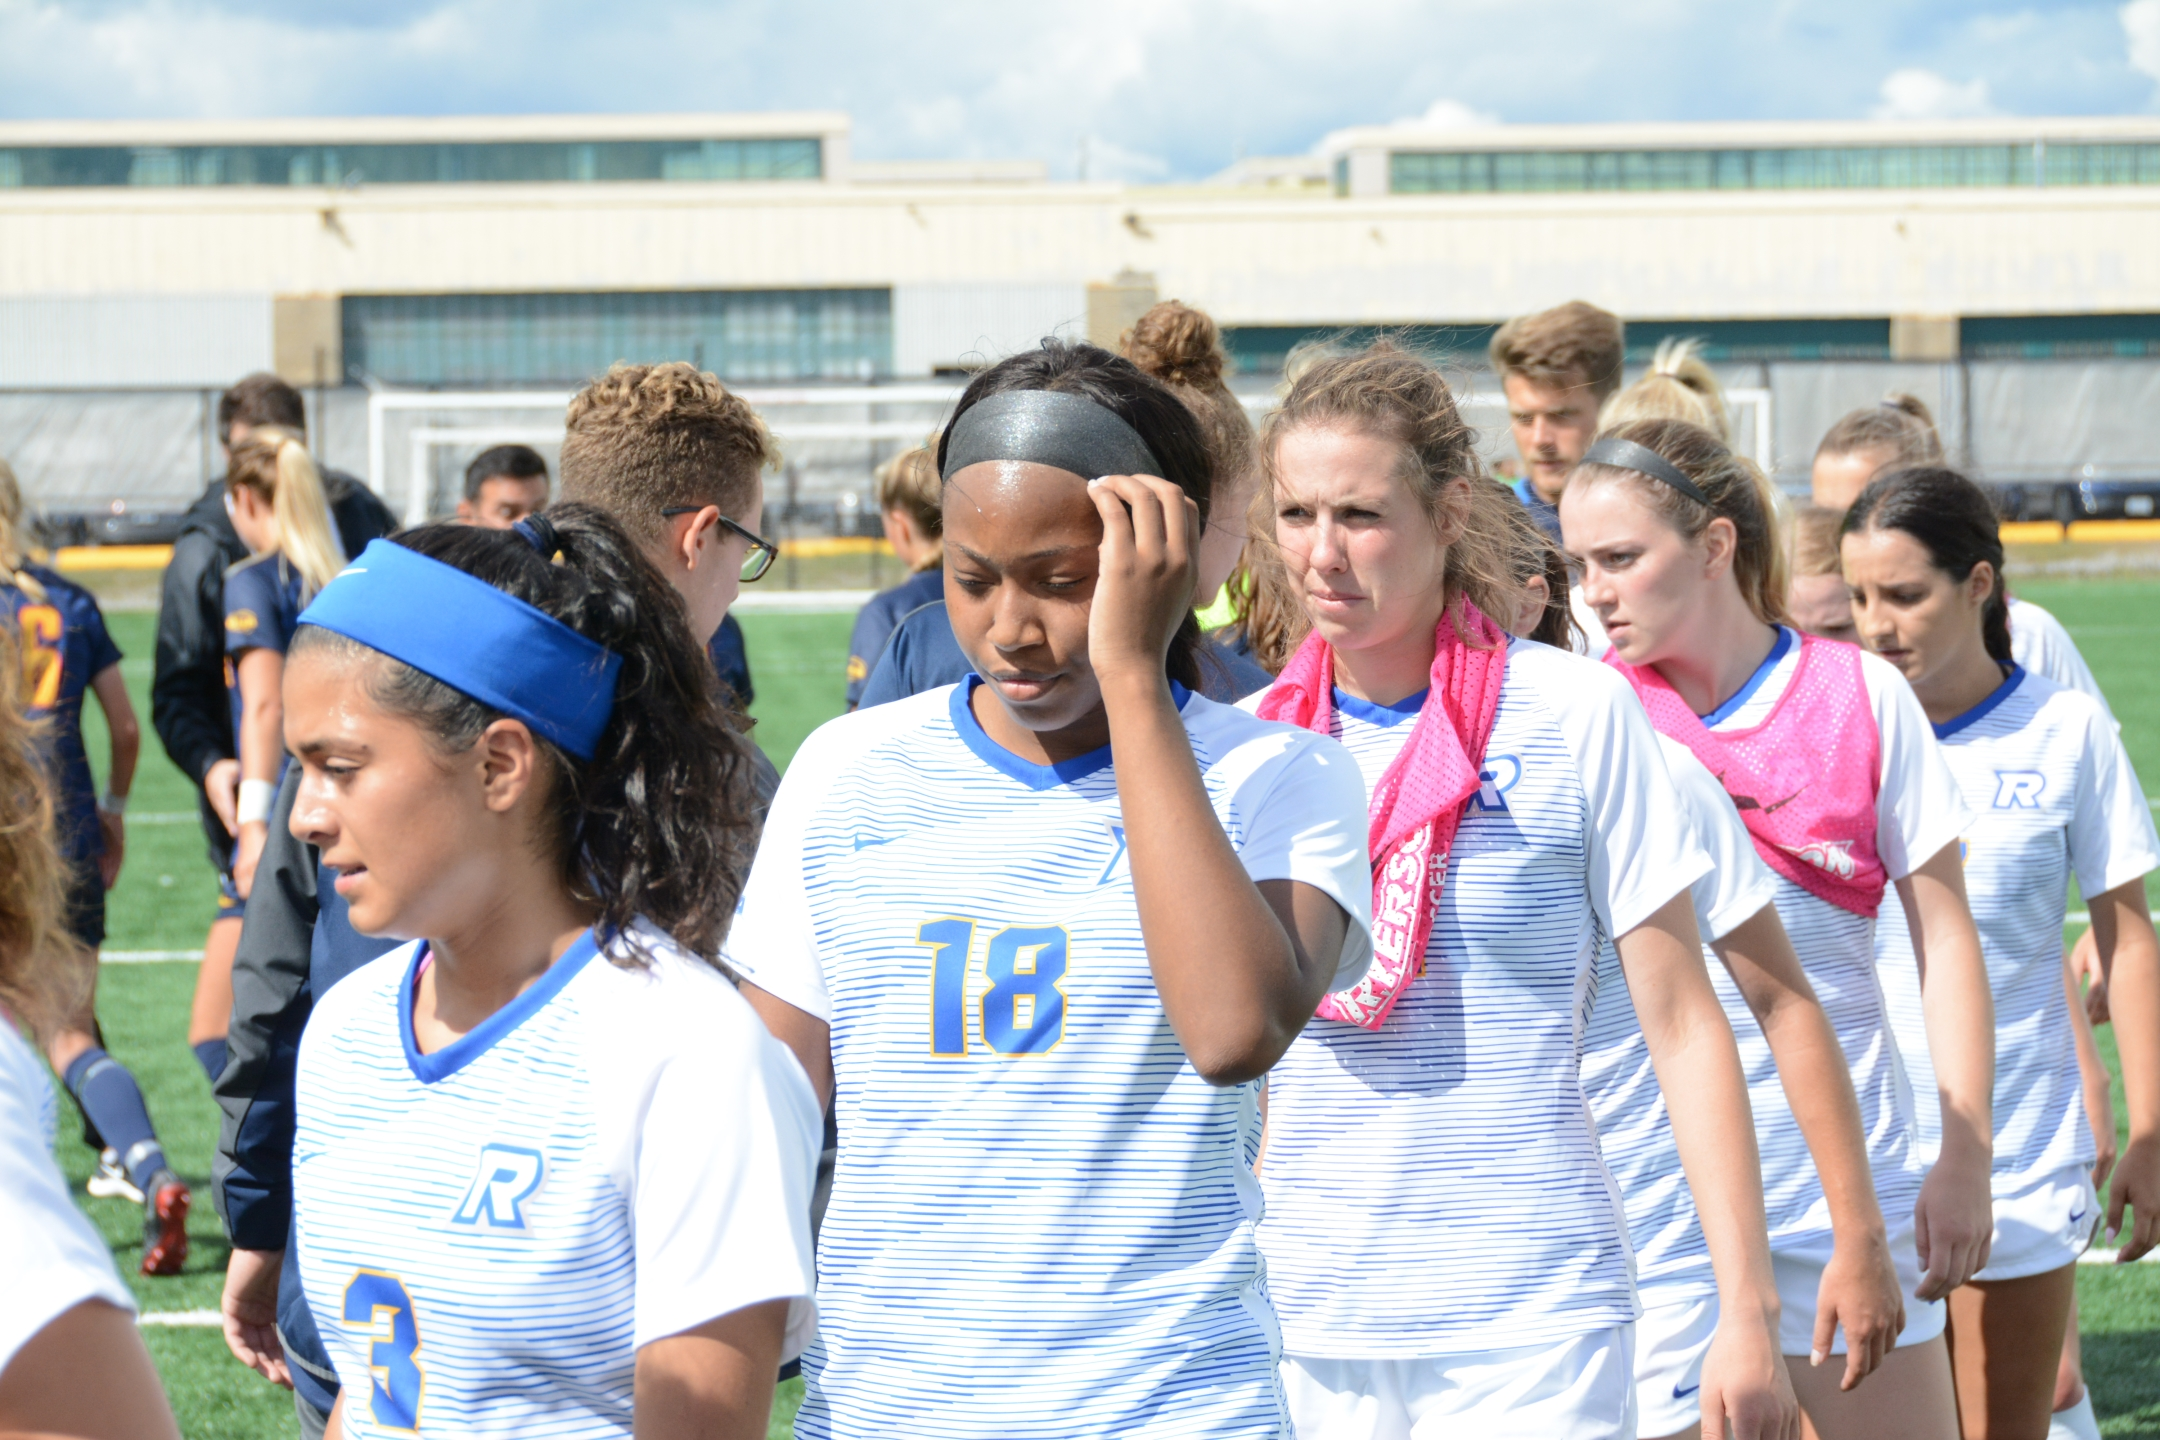 A photo of female Ryerson soccer players high-fiving another team and looking contrite